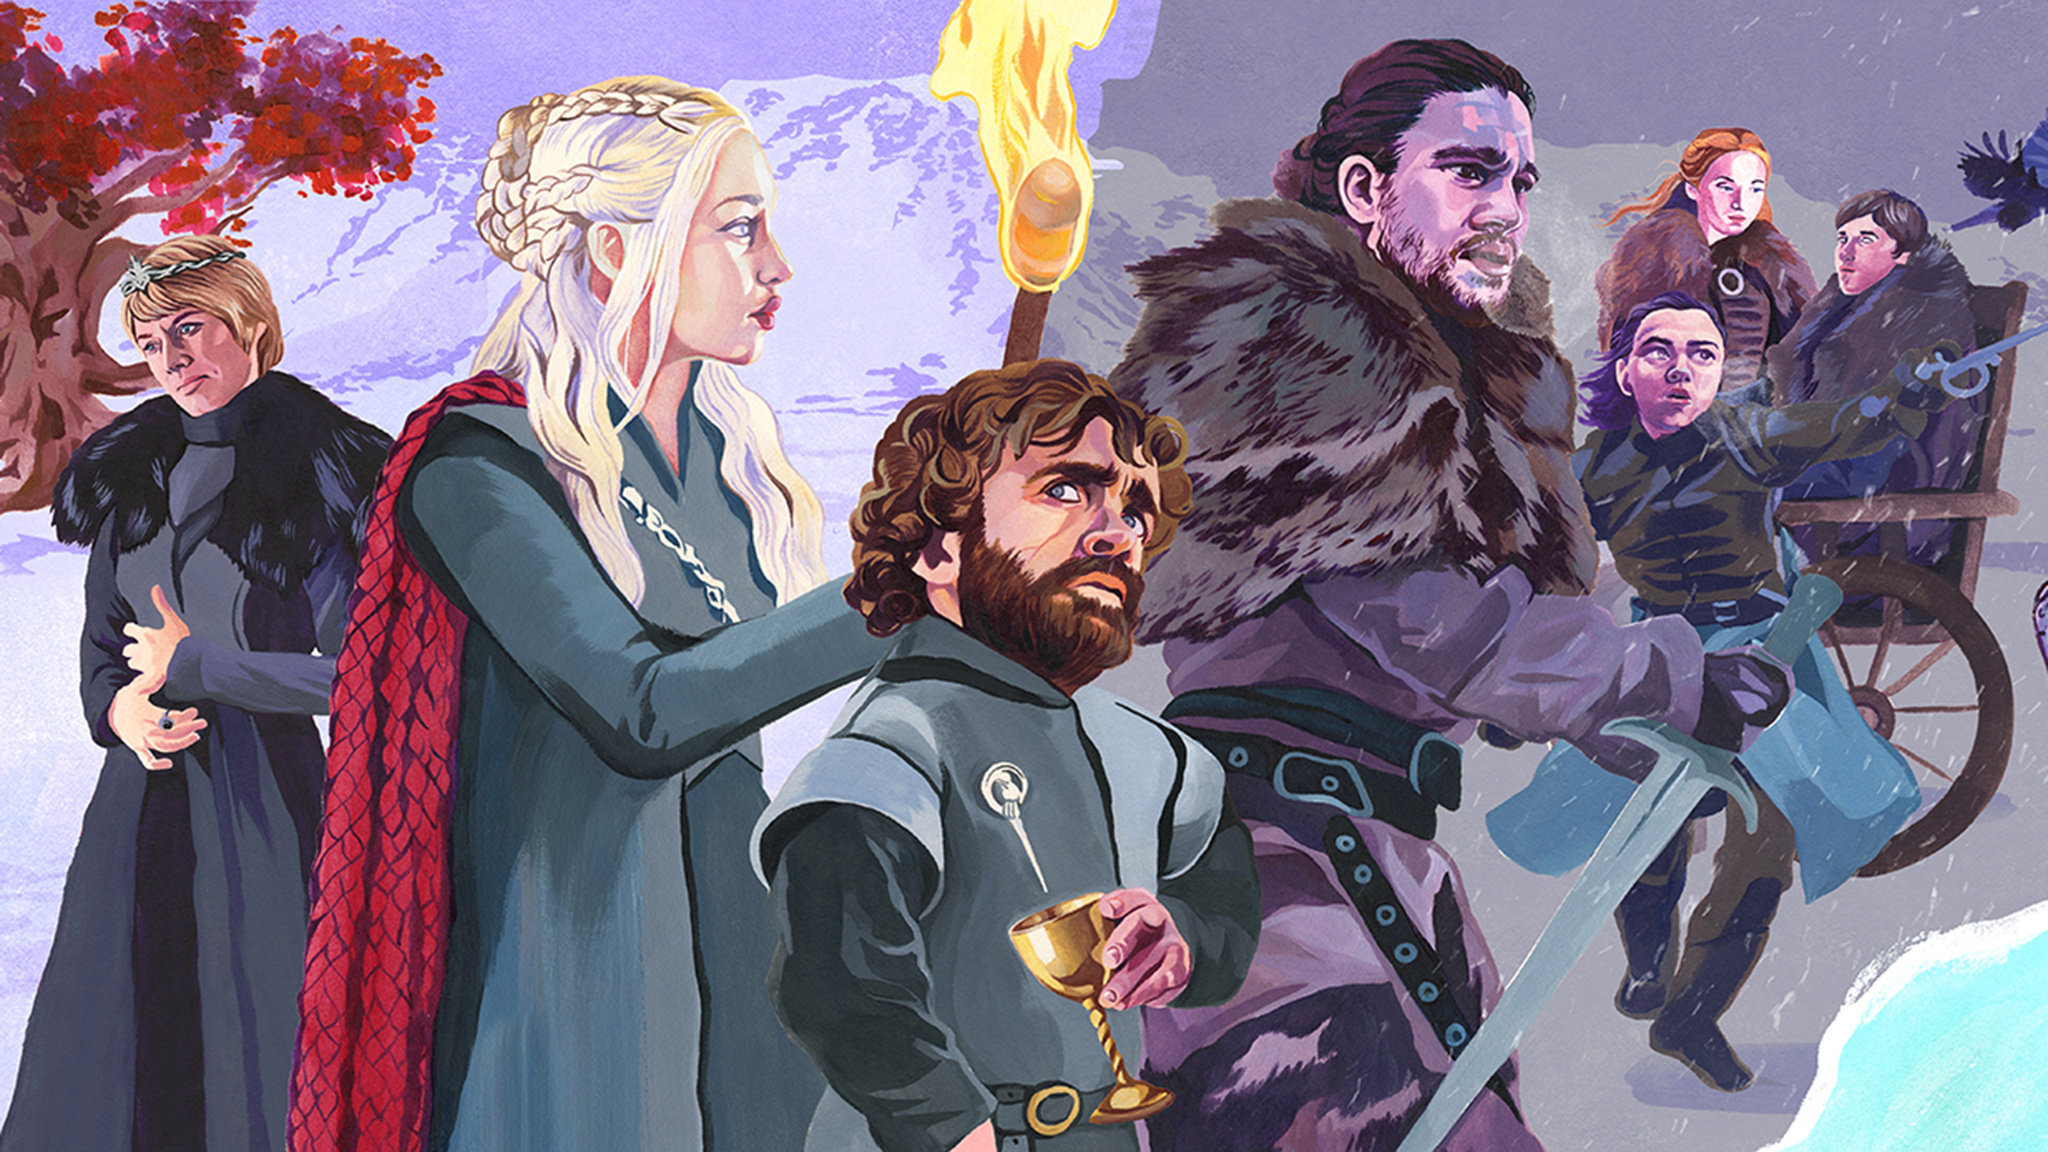 How Game of Thrones changed television | Financial Times